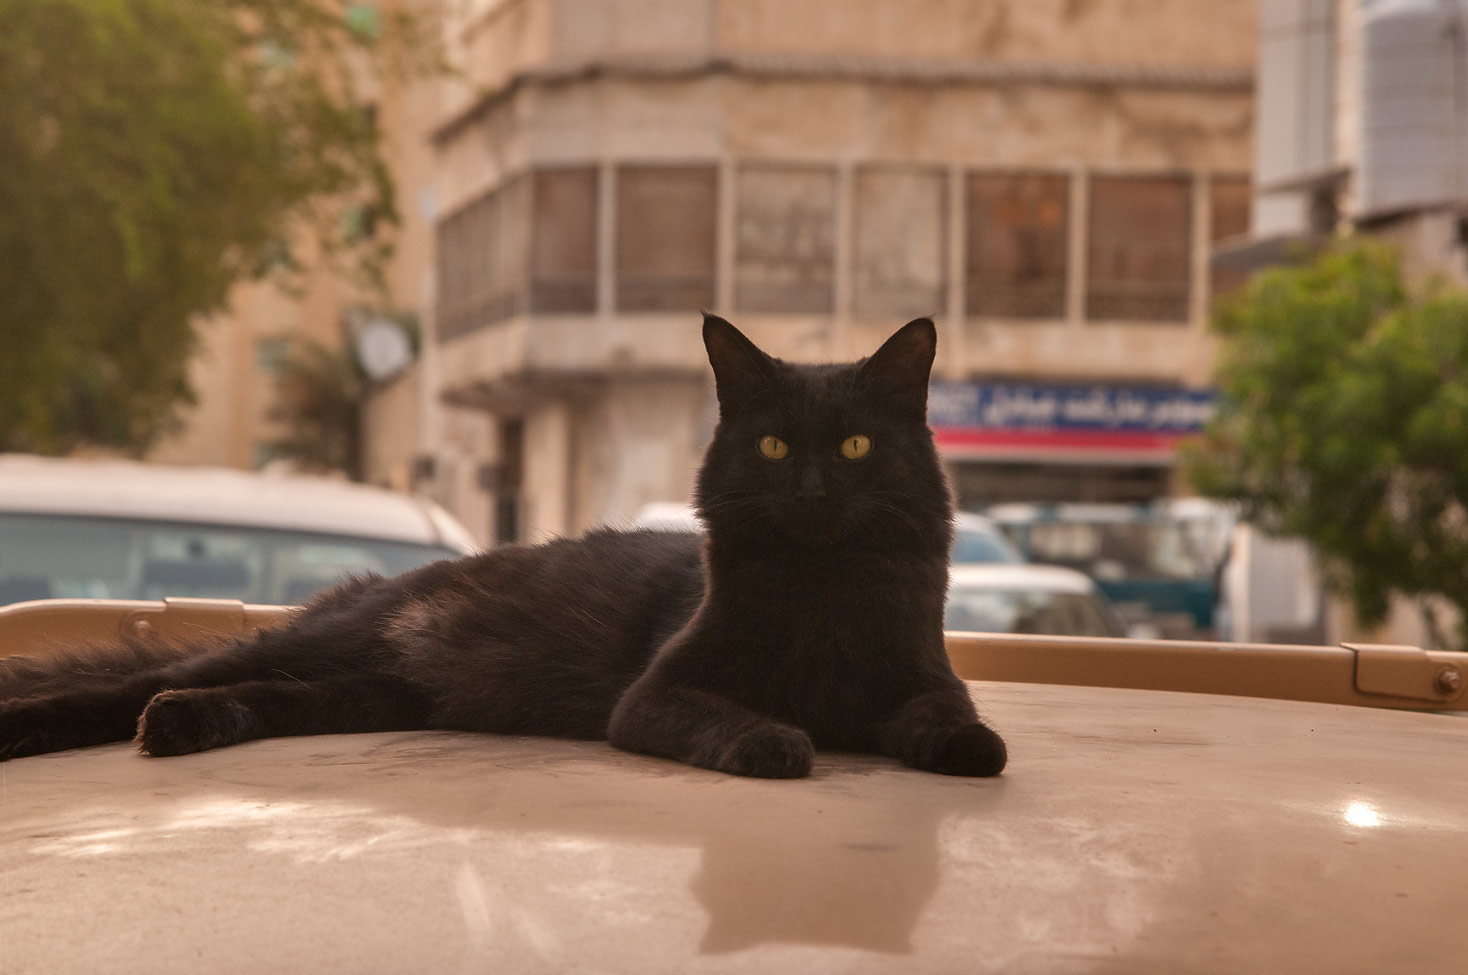 Black cat sitting on a car at Muaath Bin Jabal St., Al Doha Al Jadeeda area. Doha, Qatar